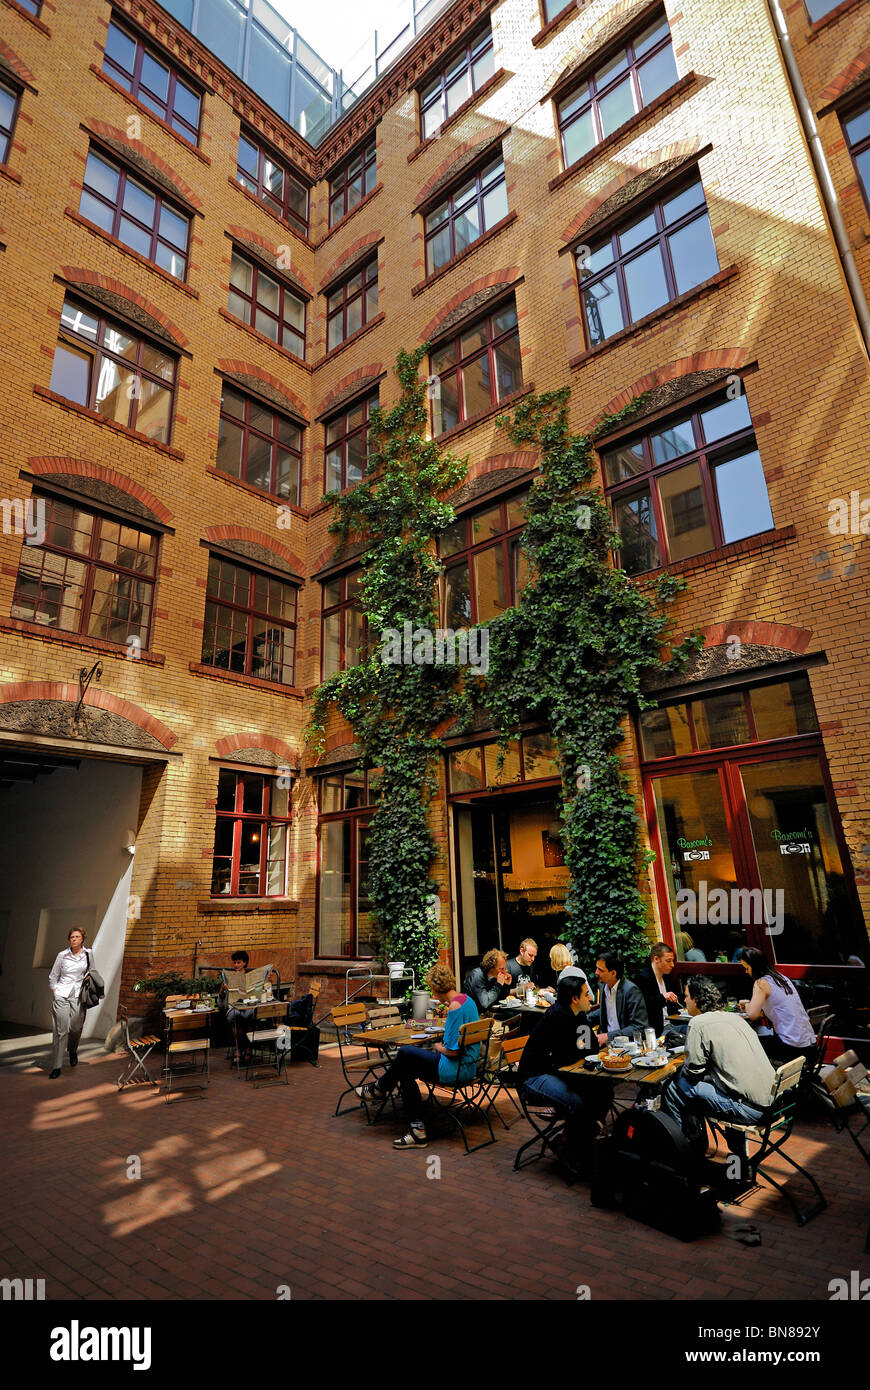 """Sophie Gips Hoefe, """"Barconi's"""" coffee shop, picturesque courtyards near Oranienburger Strasse, Mitte district, Berlin, - Stock Image"""